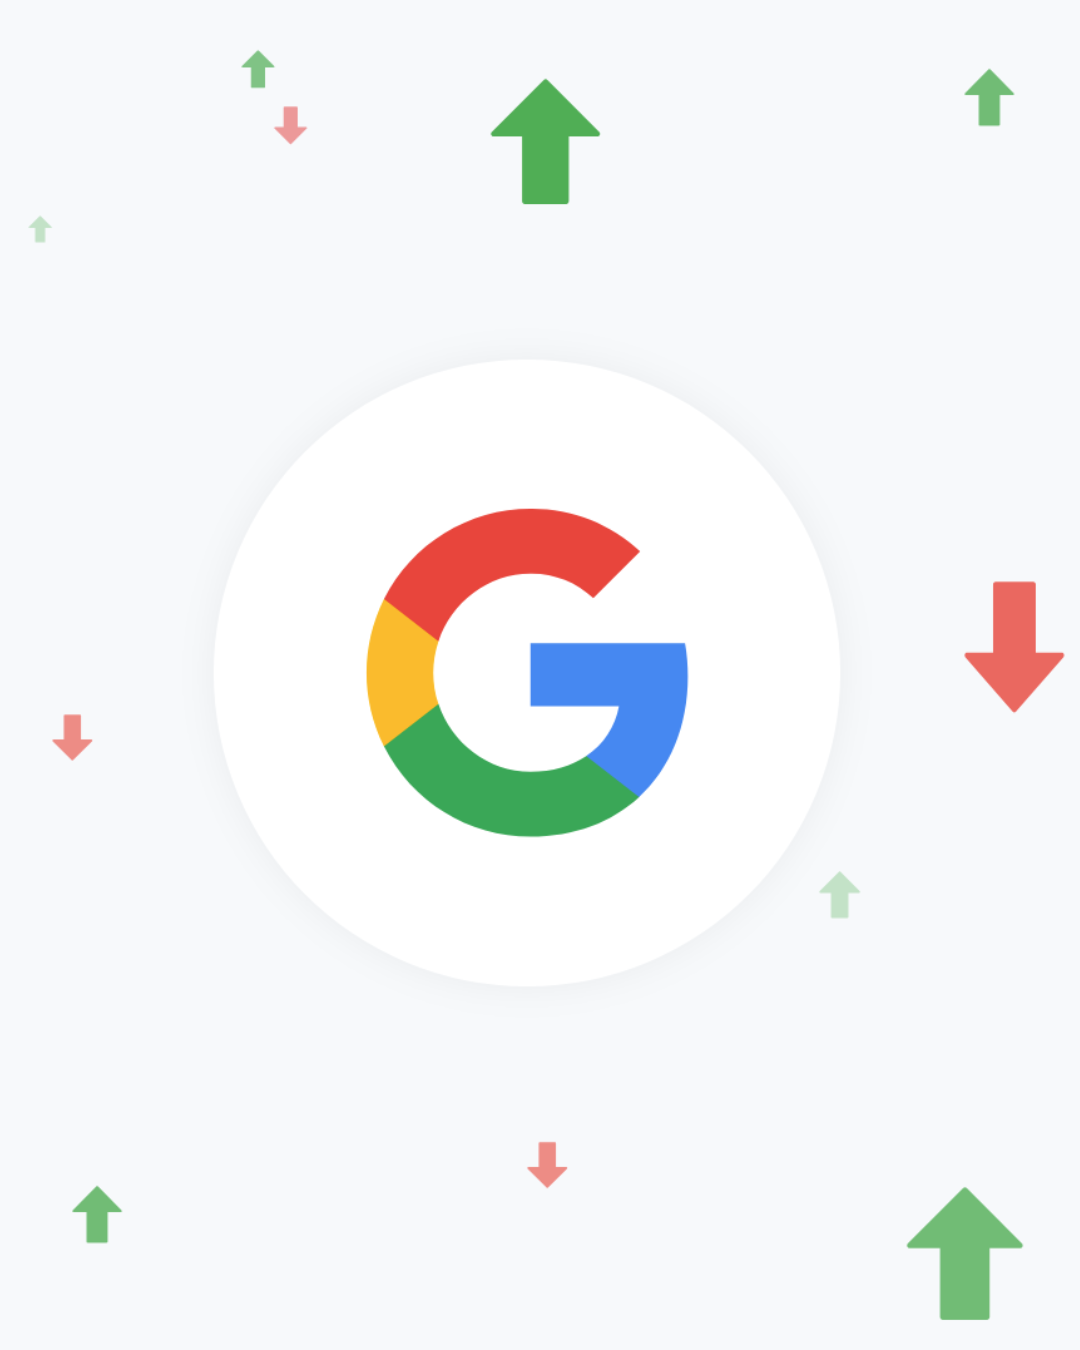 Google logo with arrows to represent keyword ranking increases